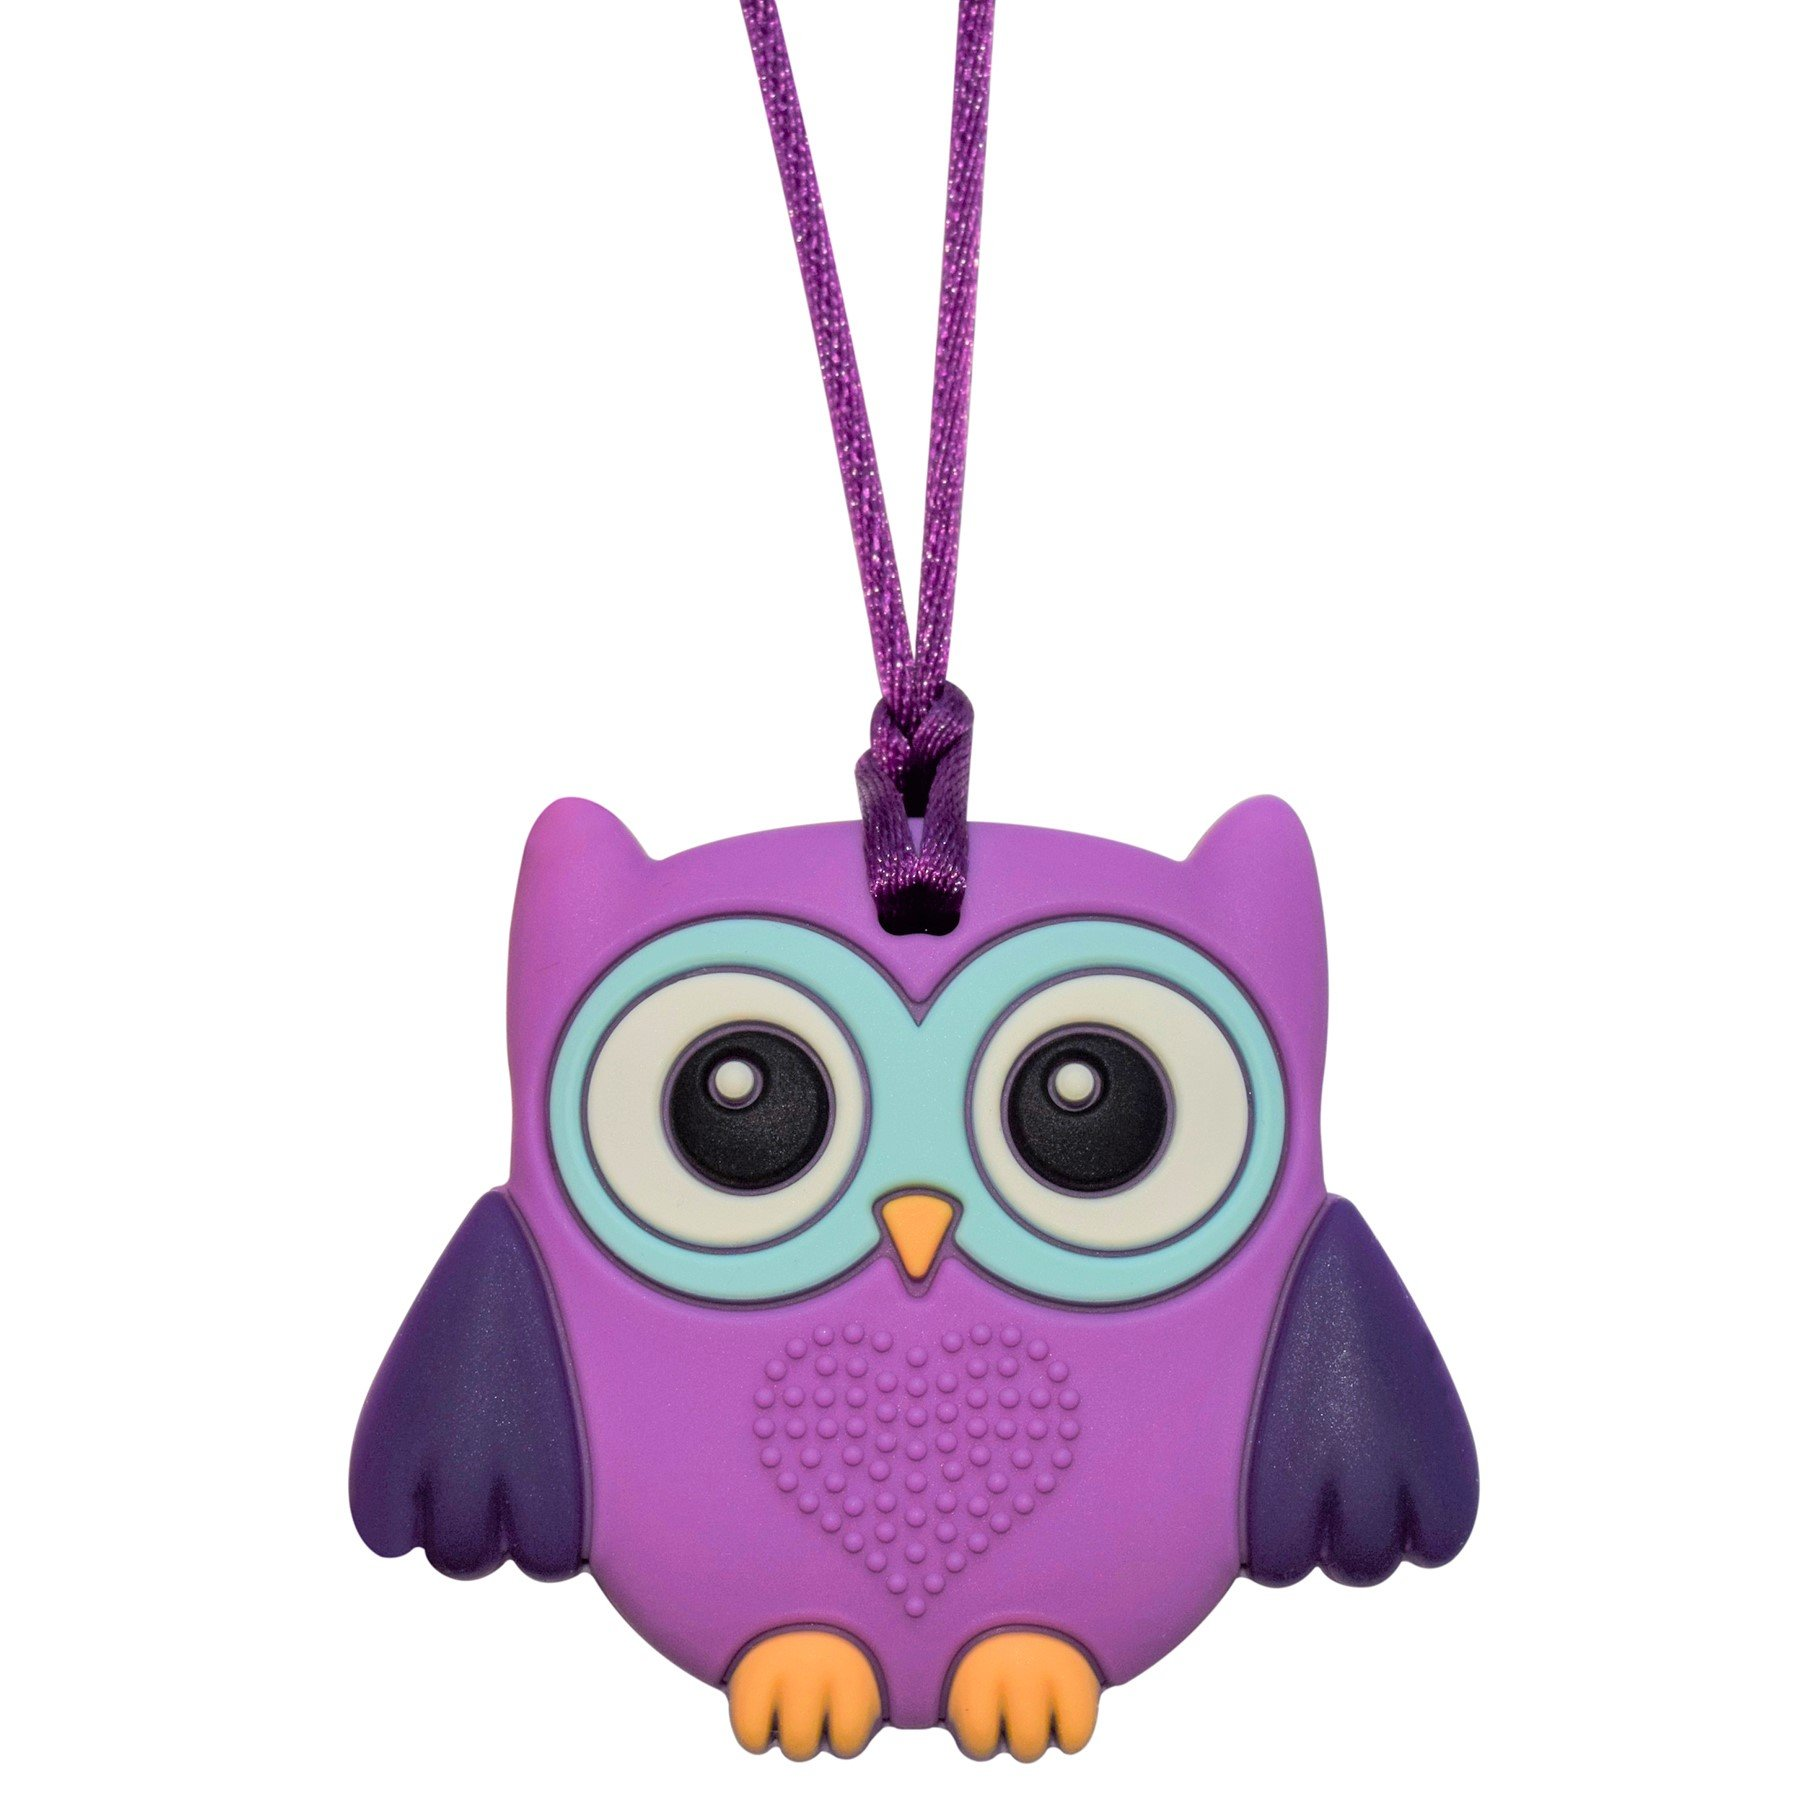 Sensory Oral Motor Aide Chewelry Necklace - Chewy Jewelry for Sensory-Focused Kids with Autism or Special Needs - Calms Kids and Reduces Biting/Chewing/Fidgeting - Owl (Purple Owlet)